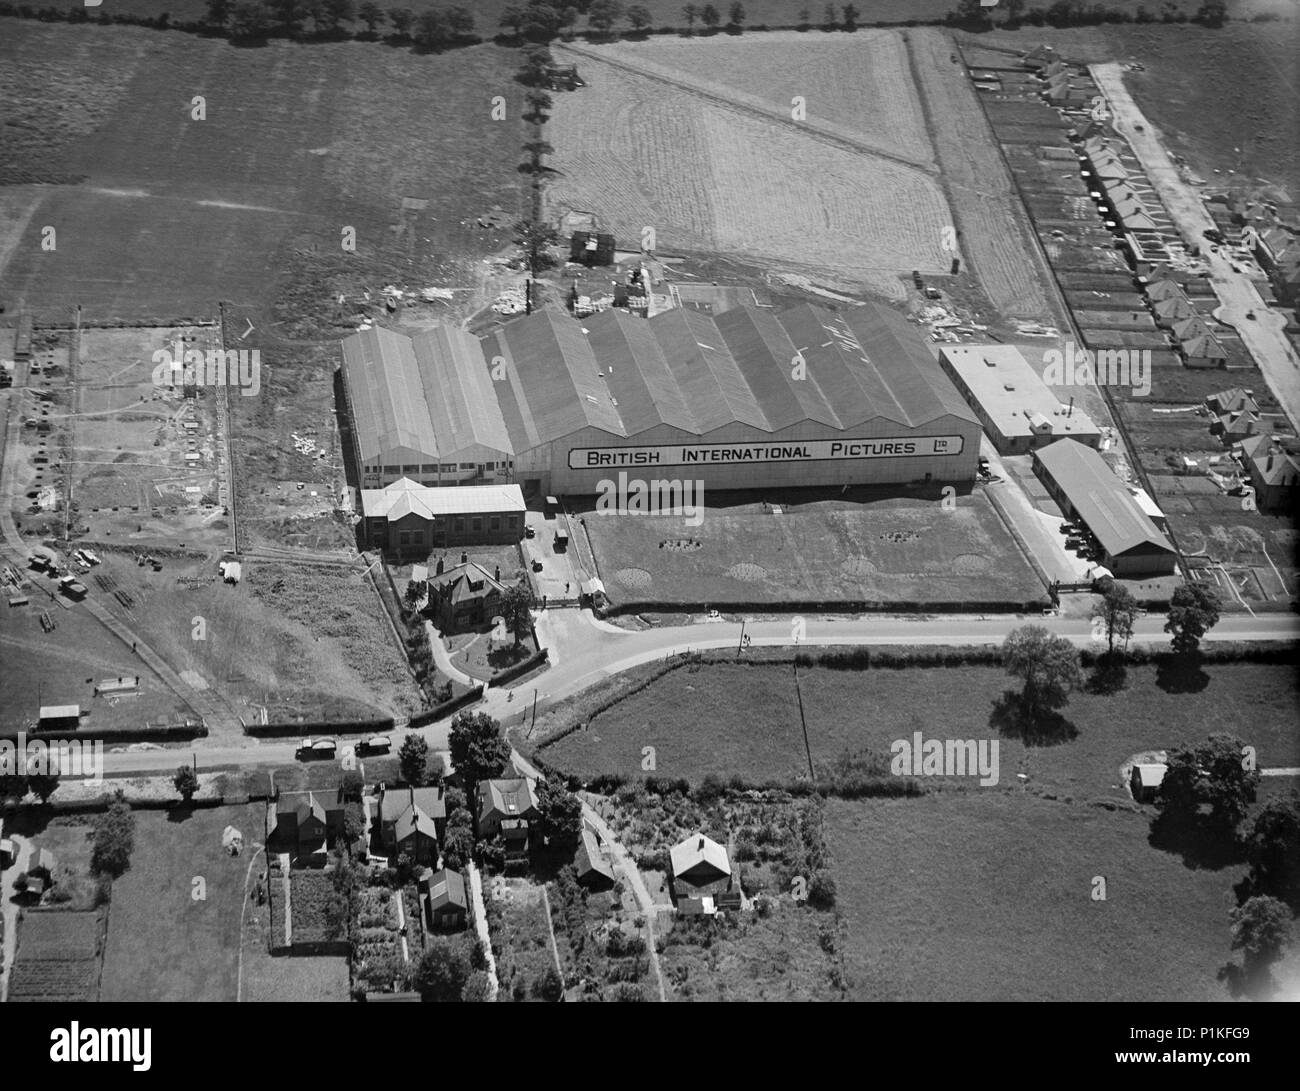 Elstree Studios, Shenley Road, Borehamwood, Hertfordshire, 1928. Aerial view of the premises of British International Pictures Ltd. - Stock Image